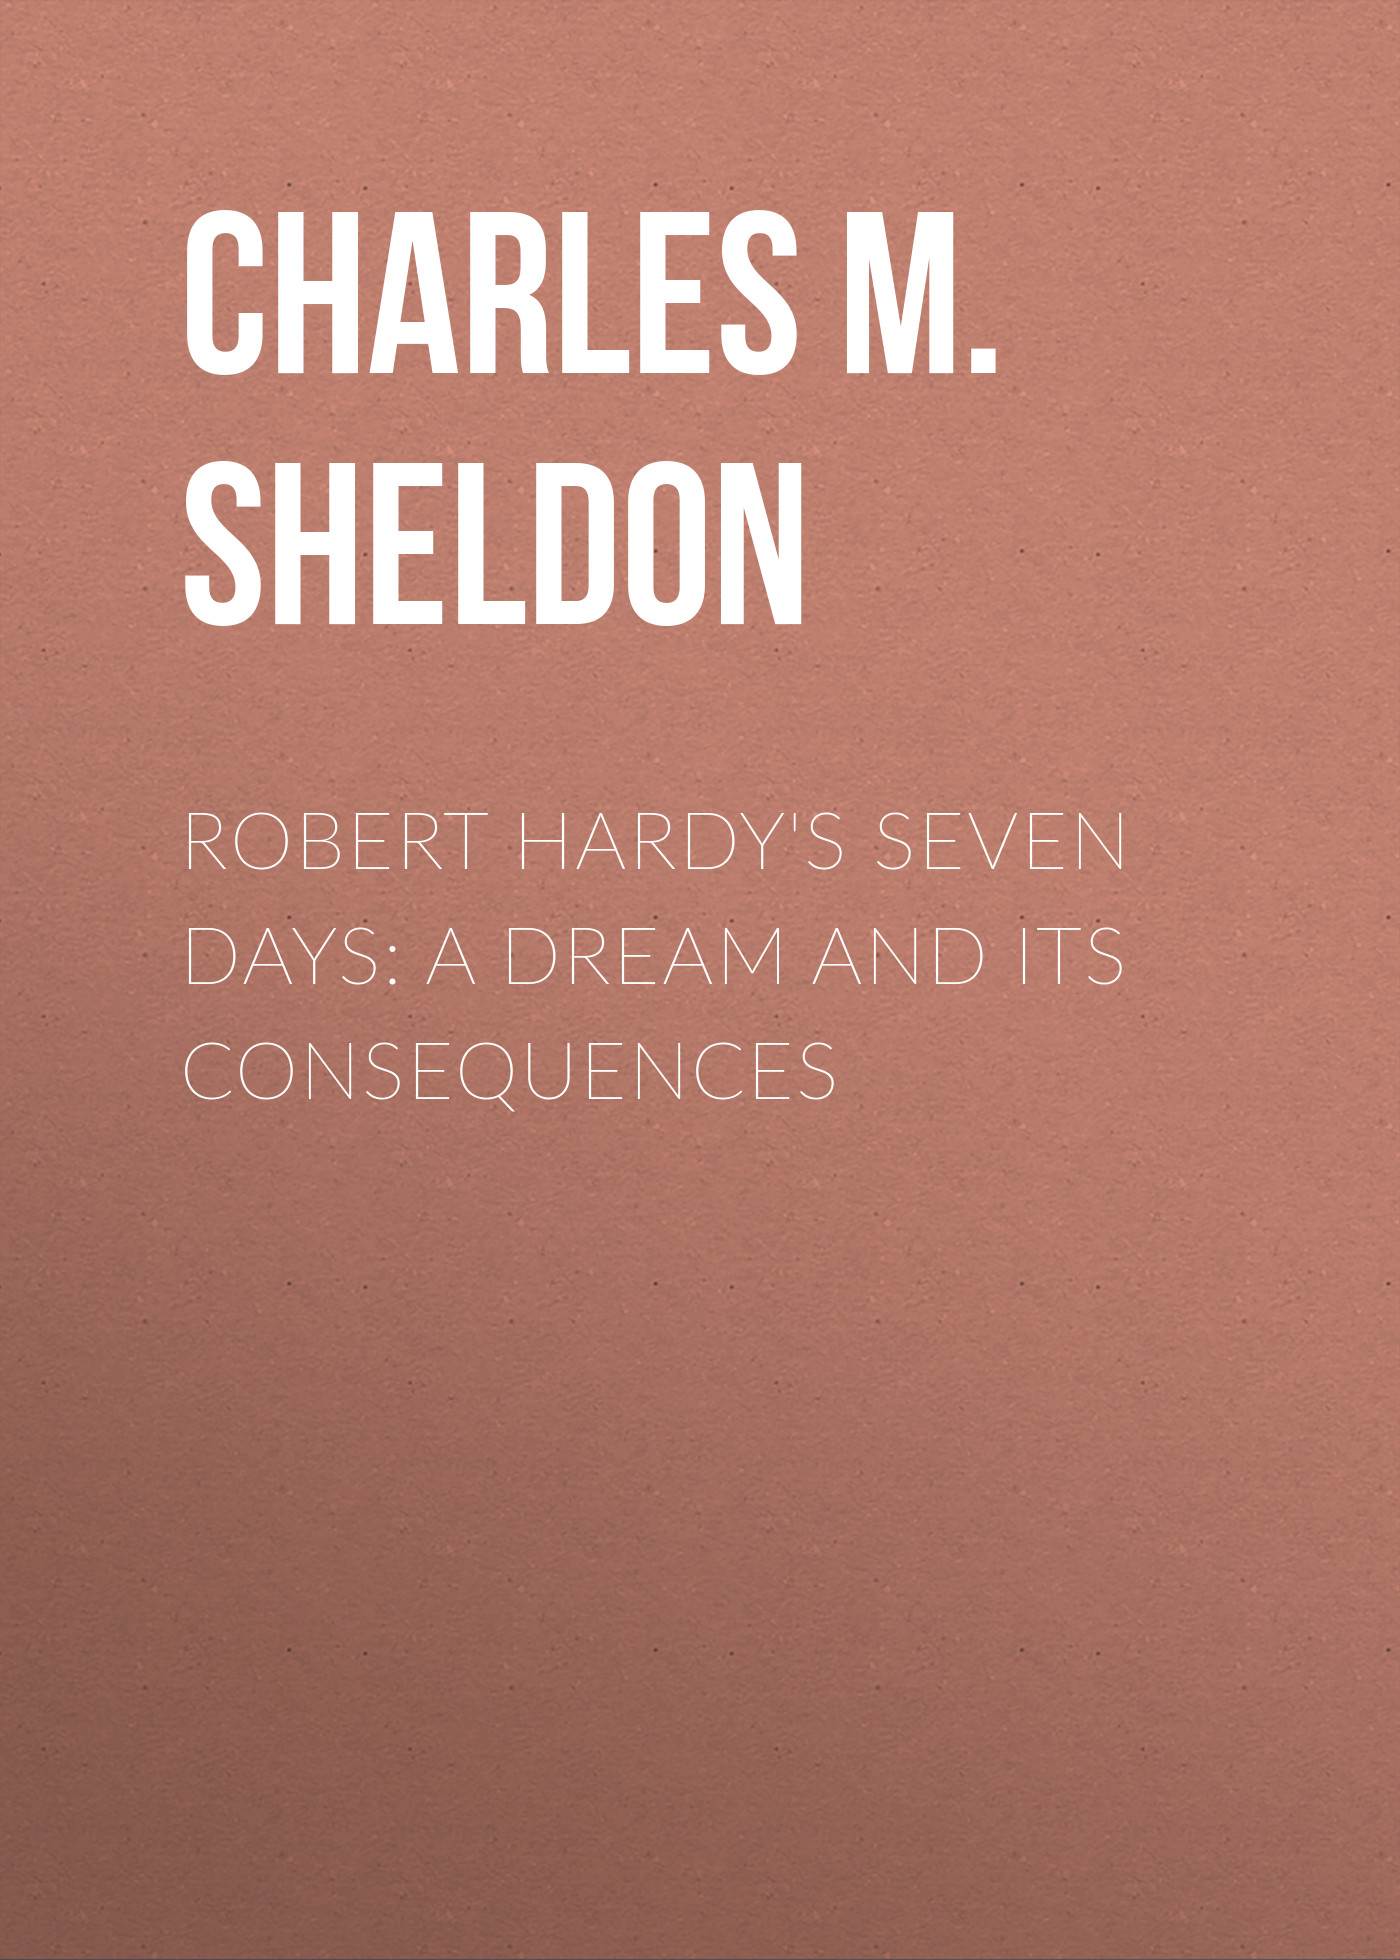 Charles M. Sheldon Robert Hardy's Seven Days: A Dream and Its Consequences